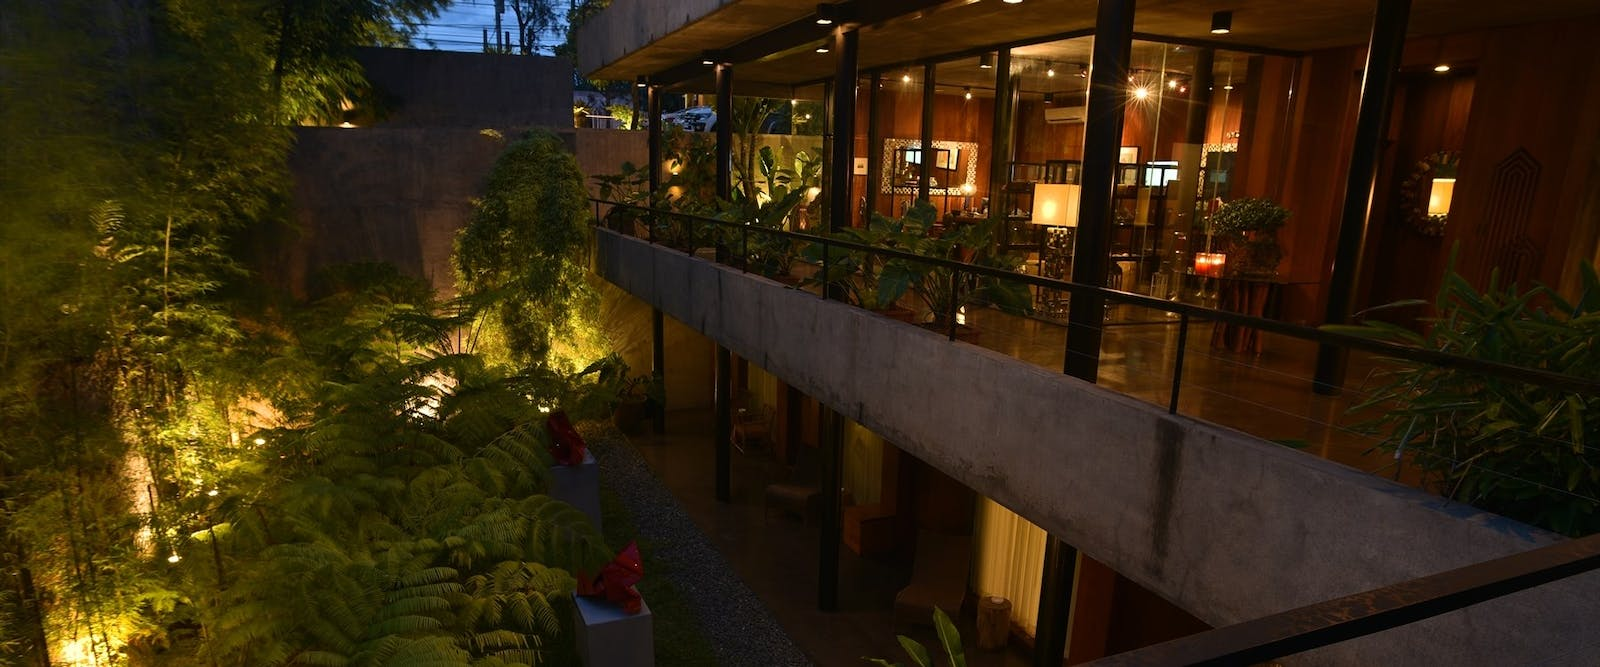 Exterior of Domicillo Design Hotel